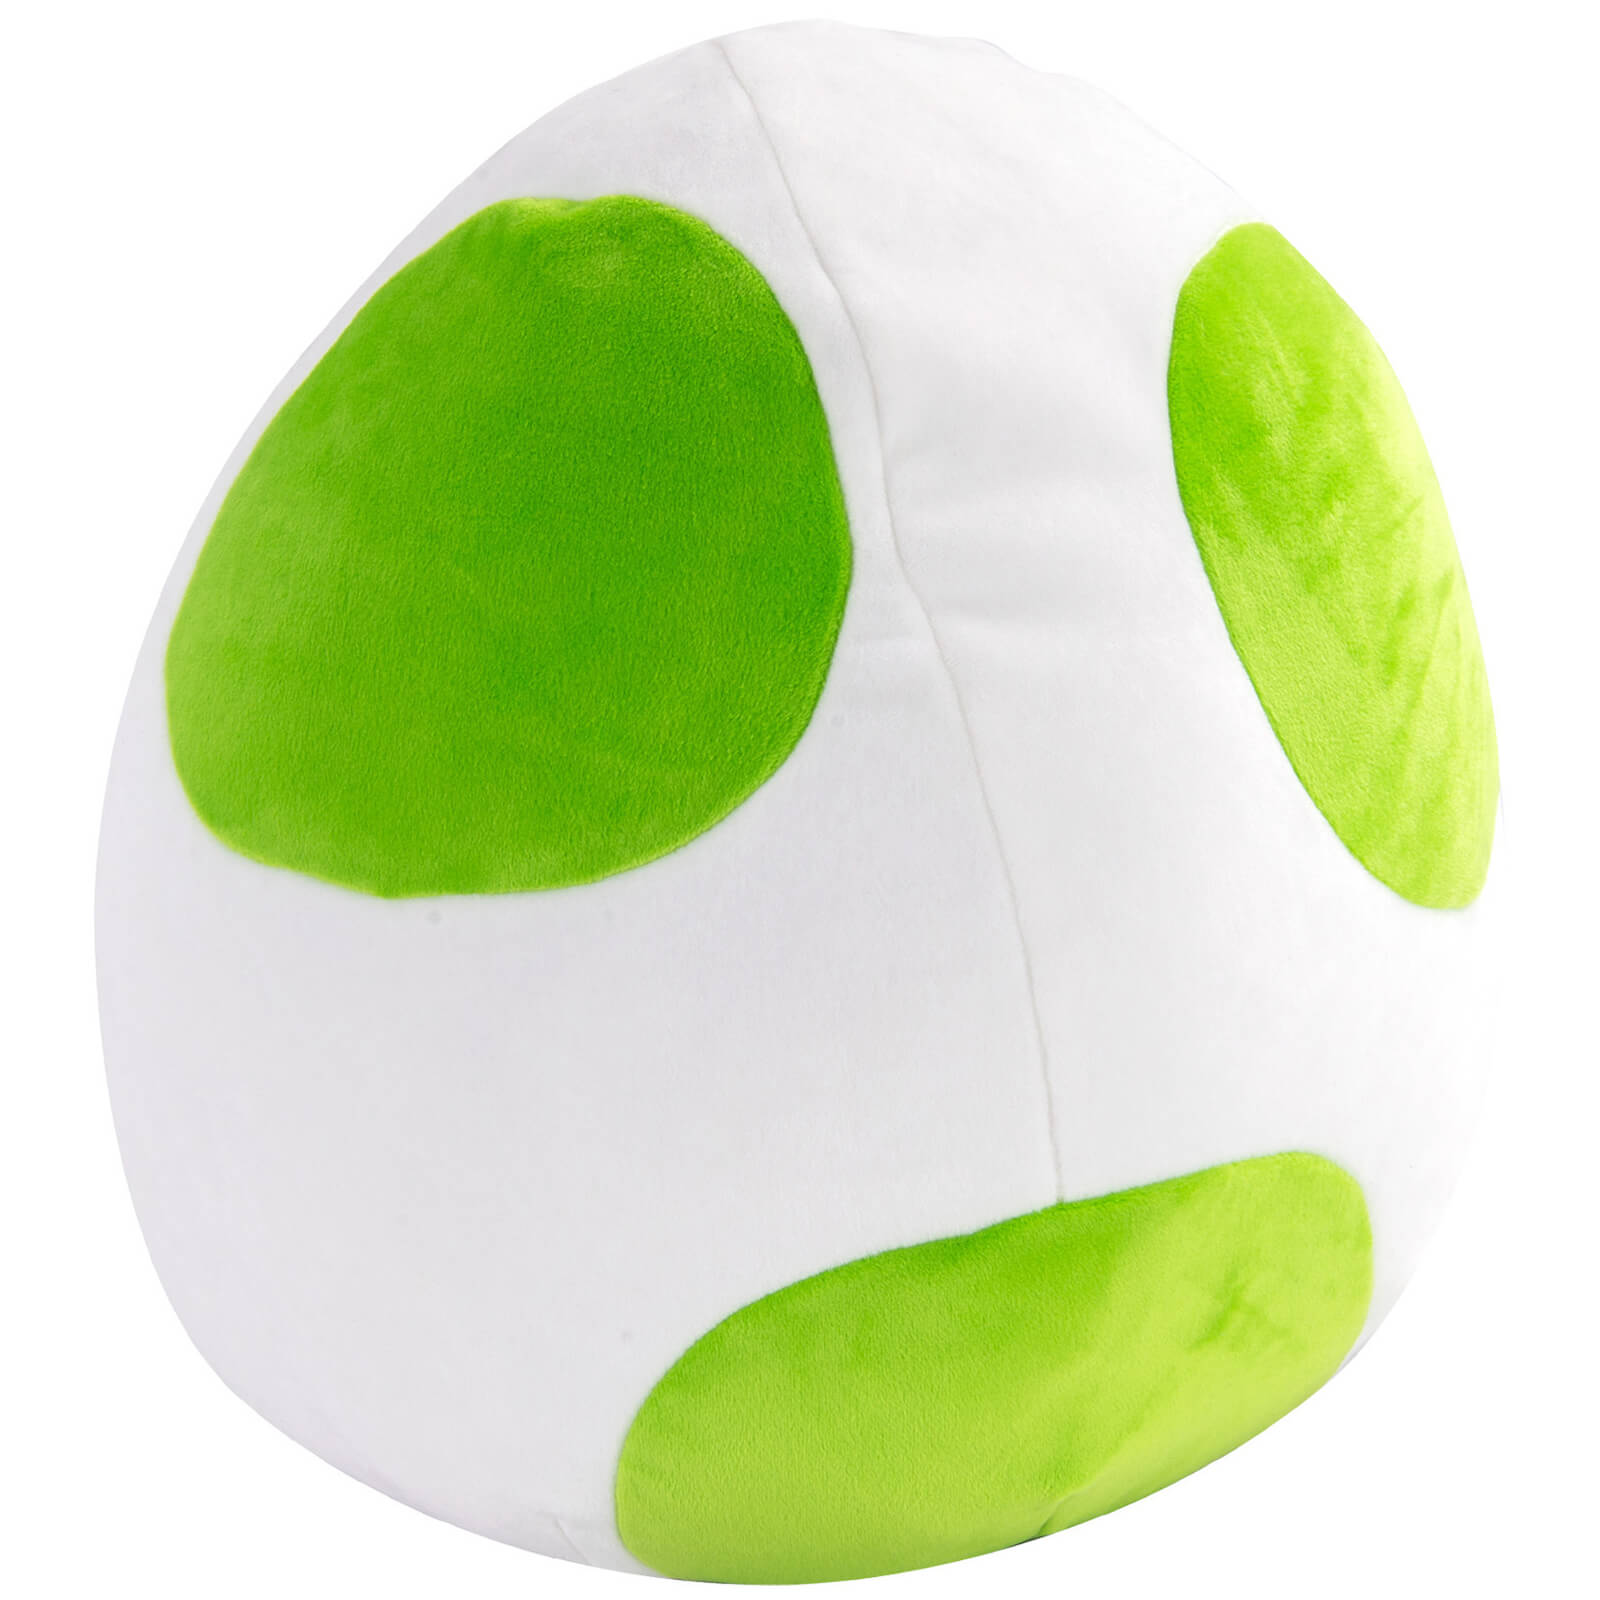 Image of Mario Kart Yoshi Egg Mega Plush Toy